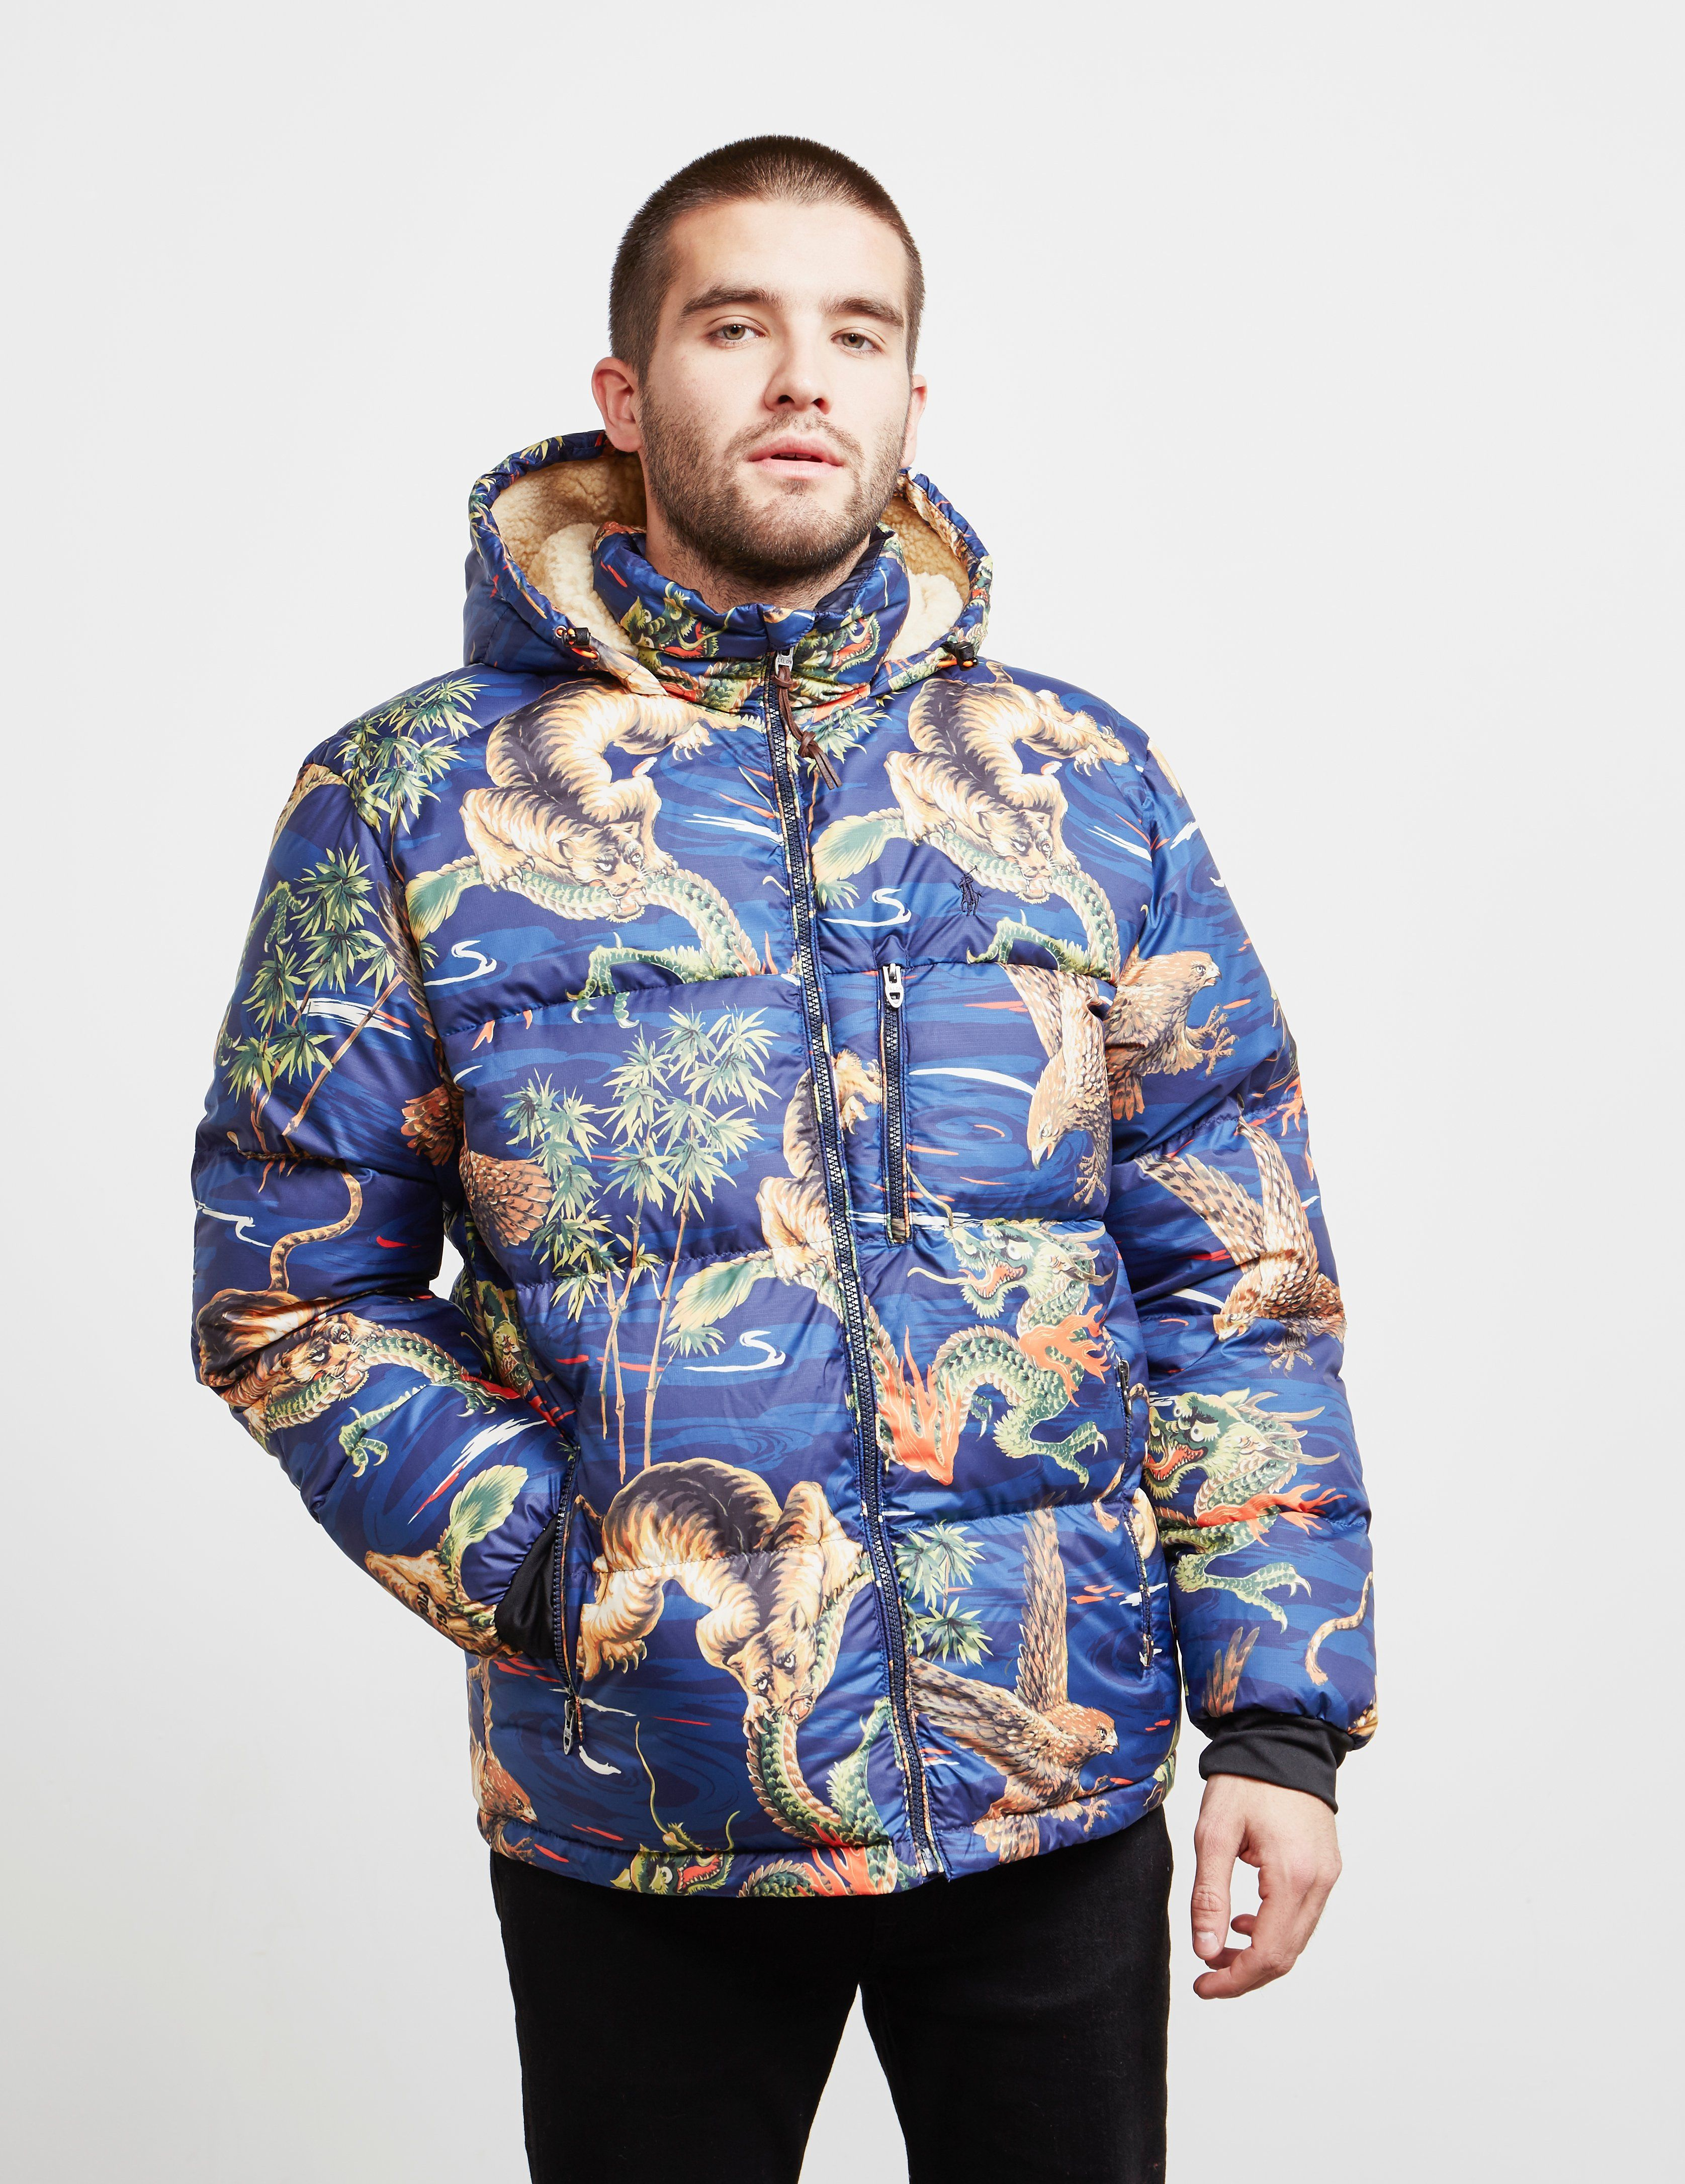 Polo Ralph Lauren Jackson Down Jacket - Online Exclusive